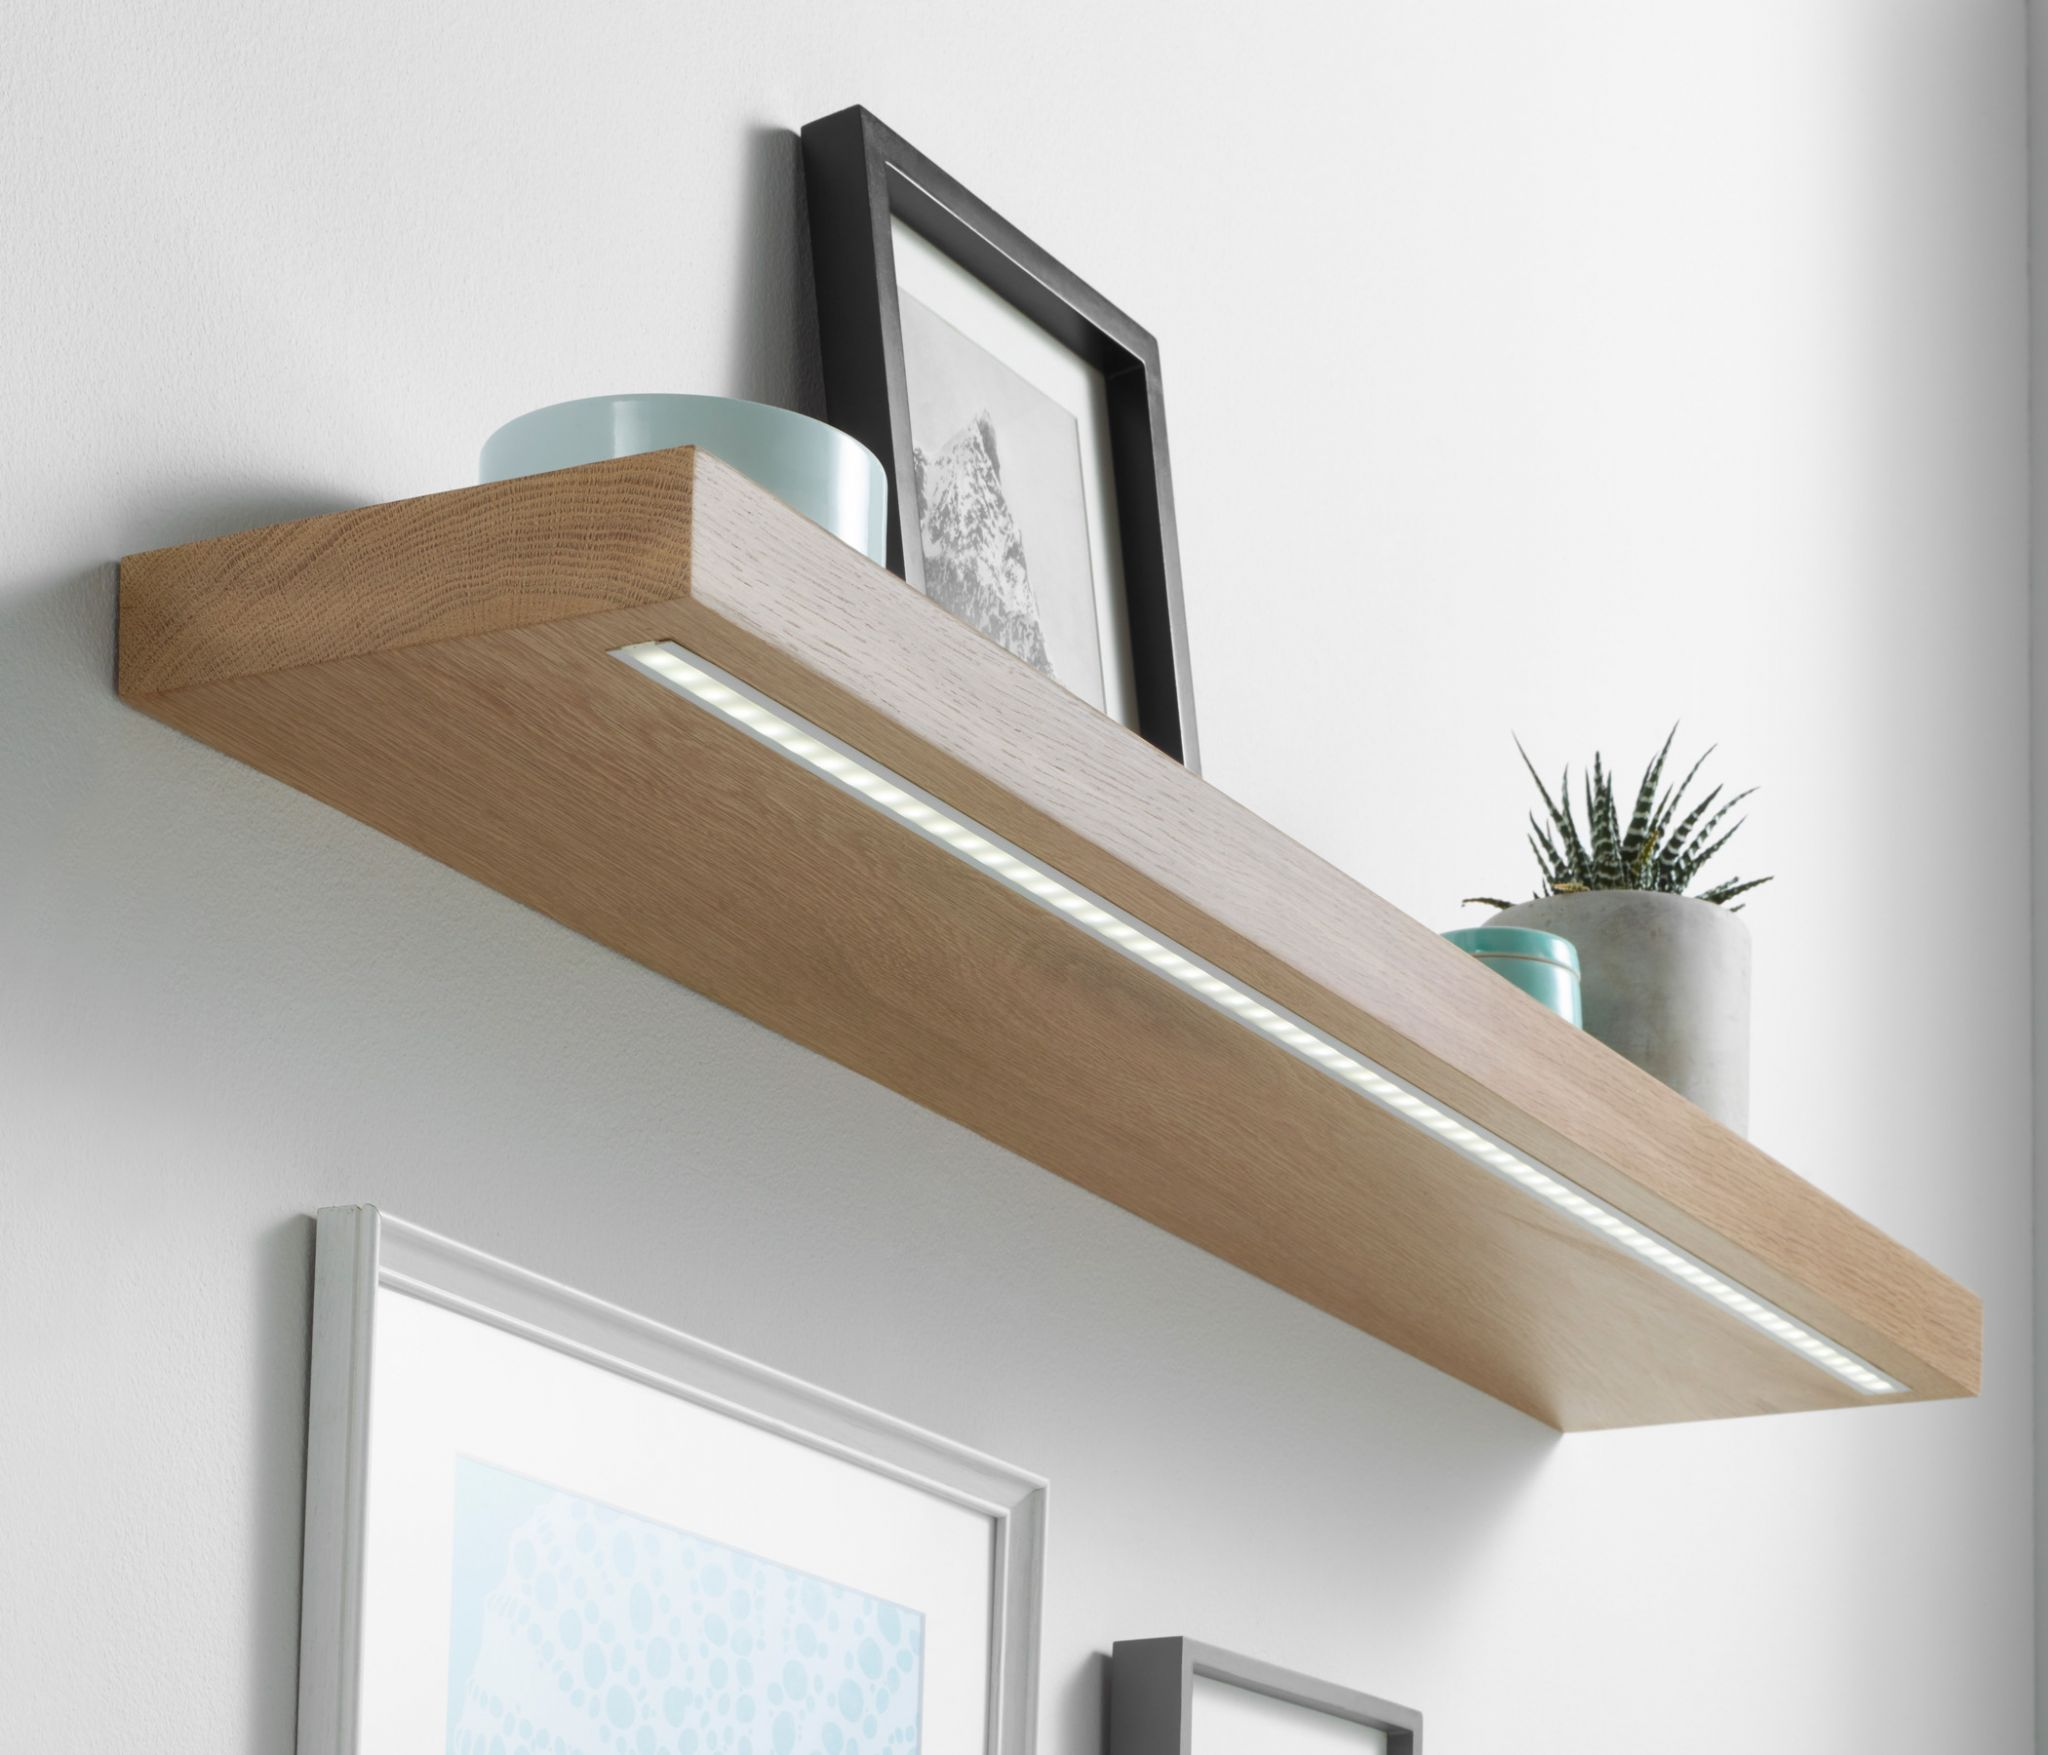 solid oak led light shelf custom made measure customise length apx corner floating with office cabinets float coat decorative brackets plate molding premade shelves best closet